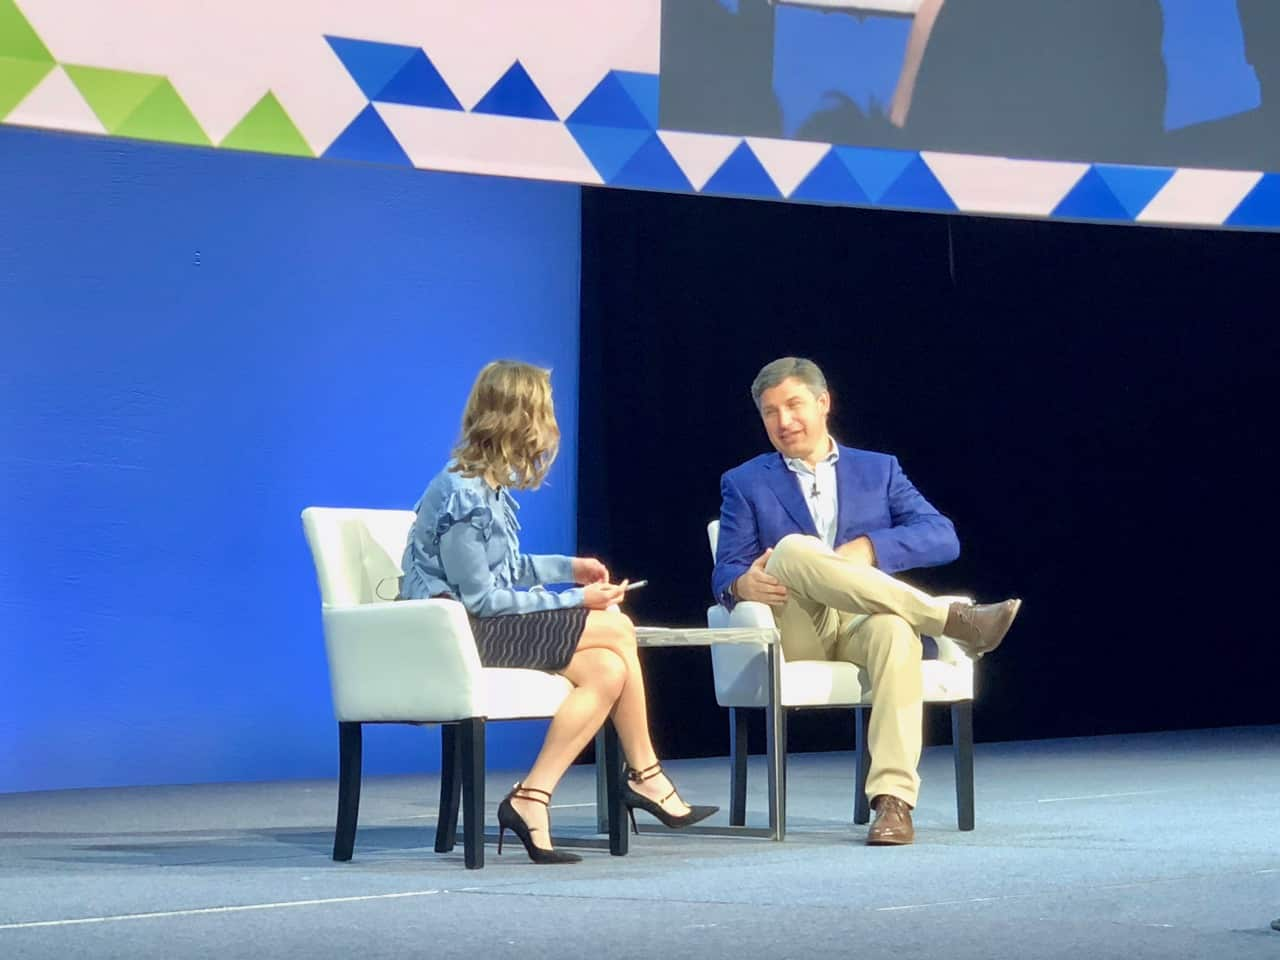 SoFi CEO Anthony Noto: We Now Offer Crypto Investing, Adds Trading in Bitcoin, Litecoin and Ethereum